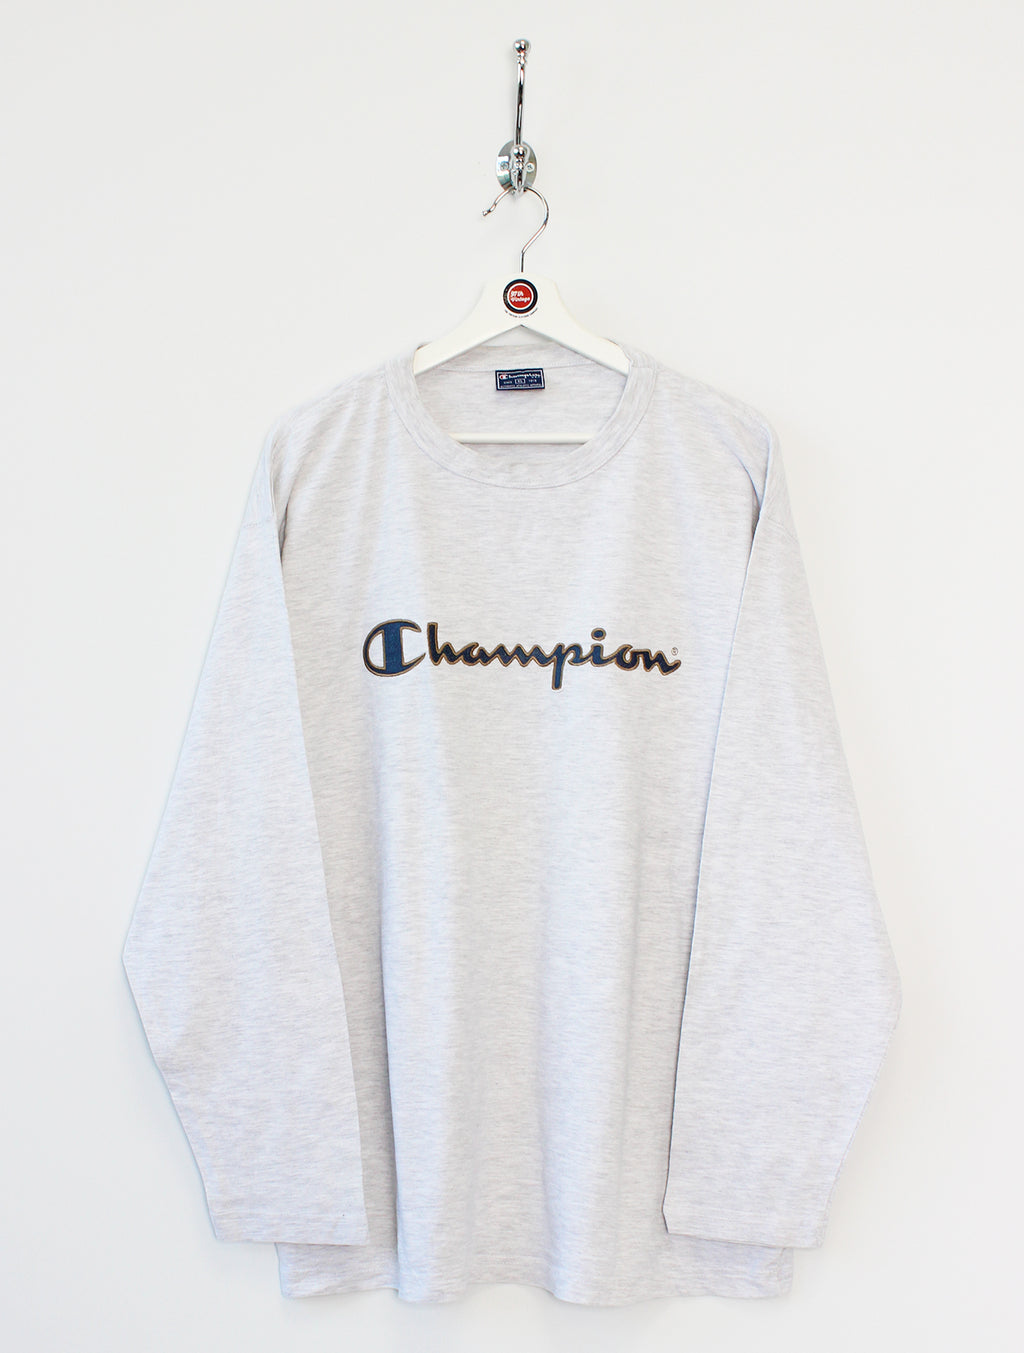 Champion Longsleeve T-Shirt (XL)